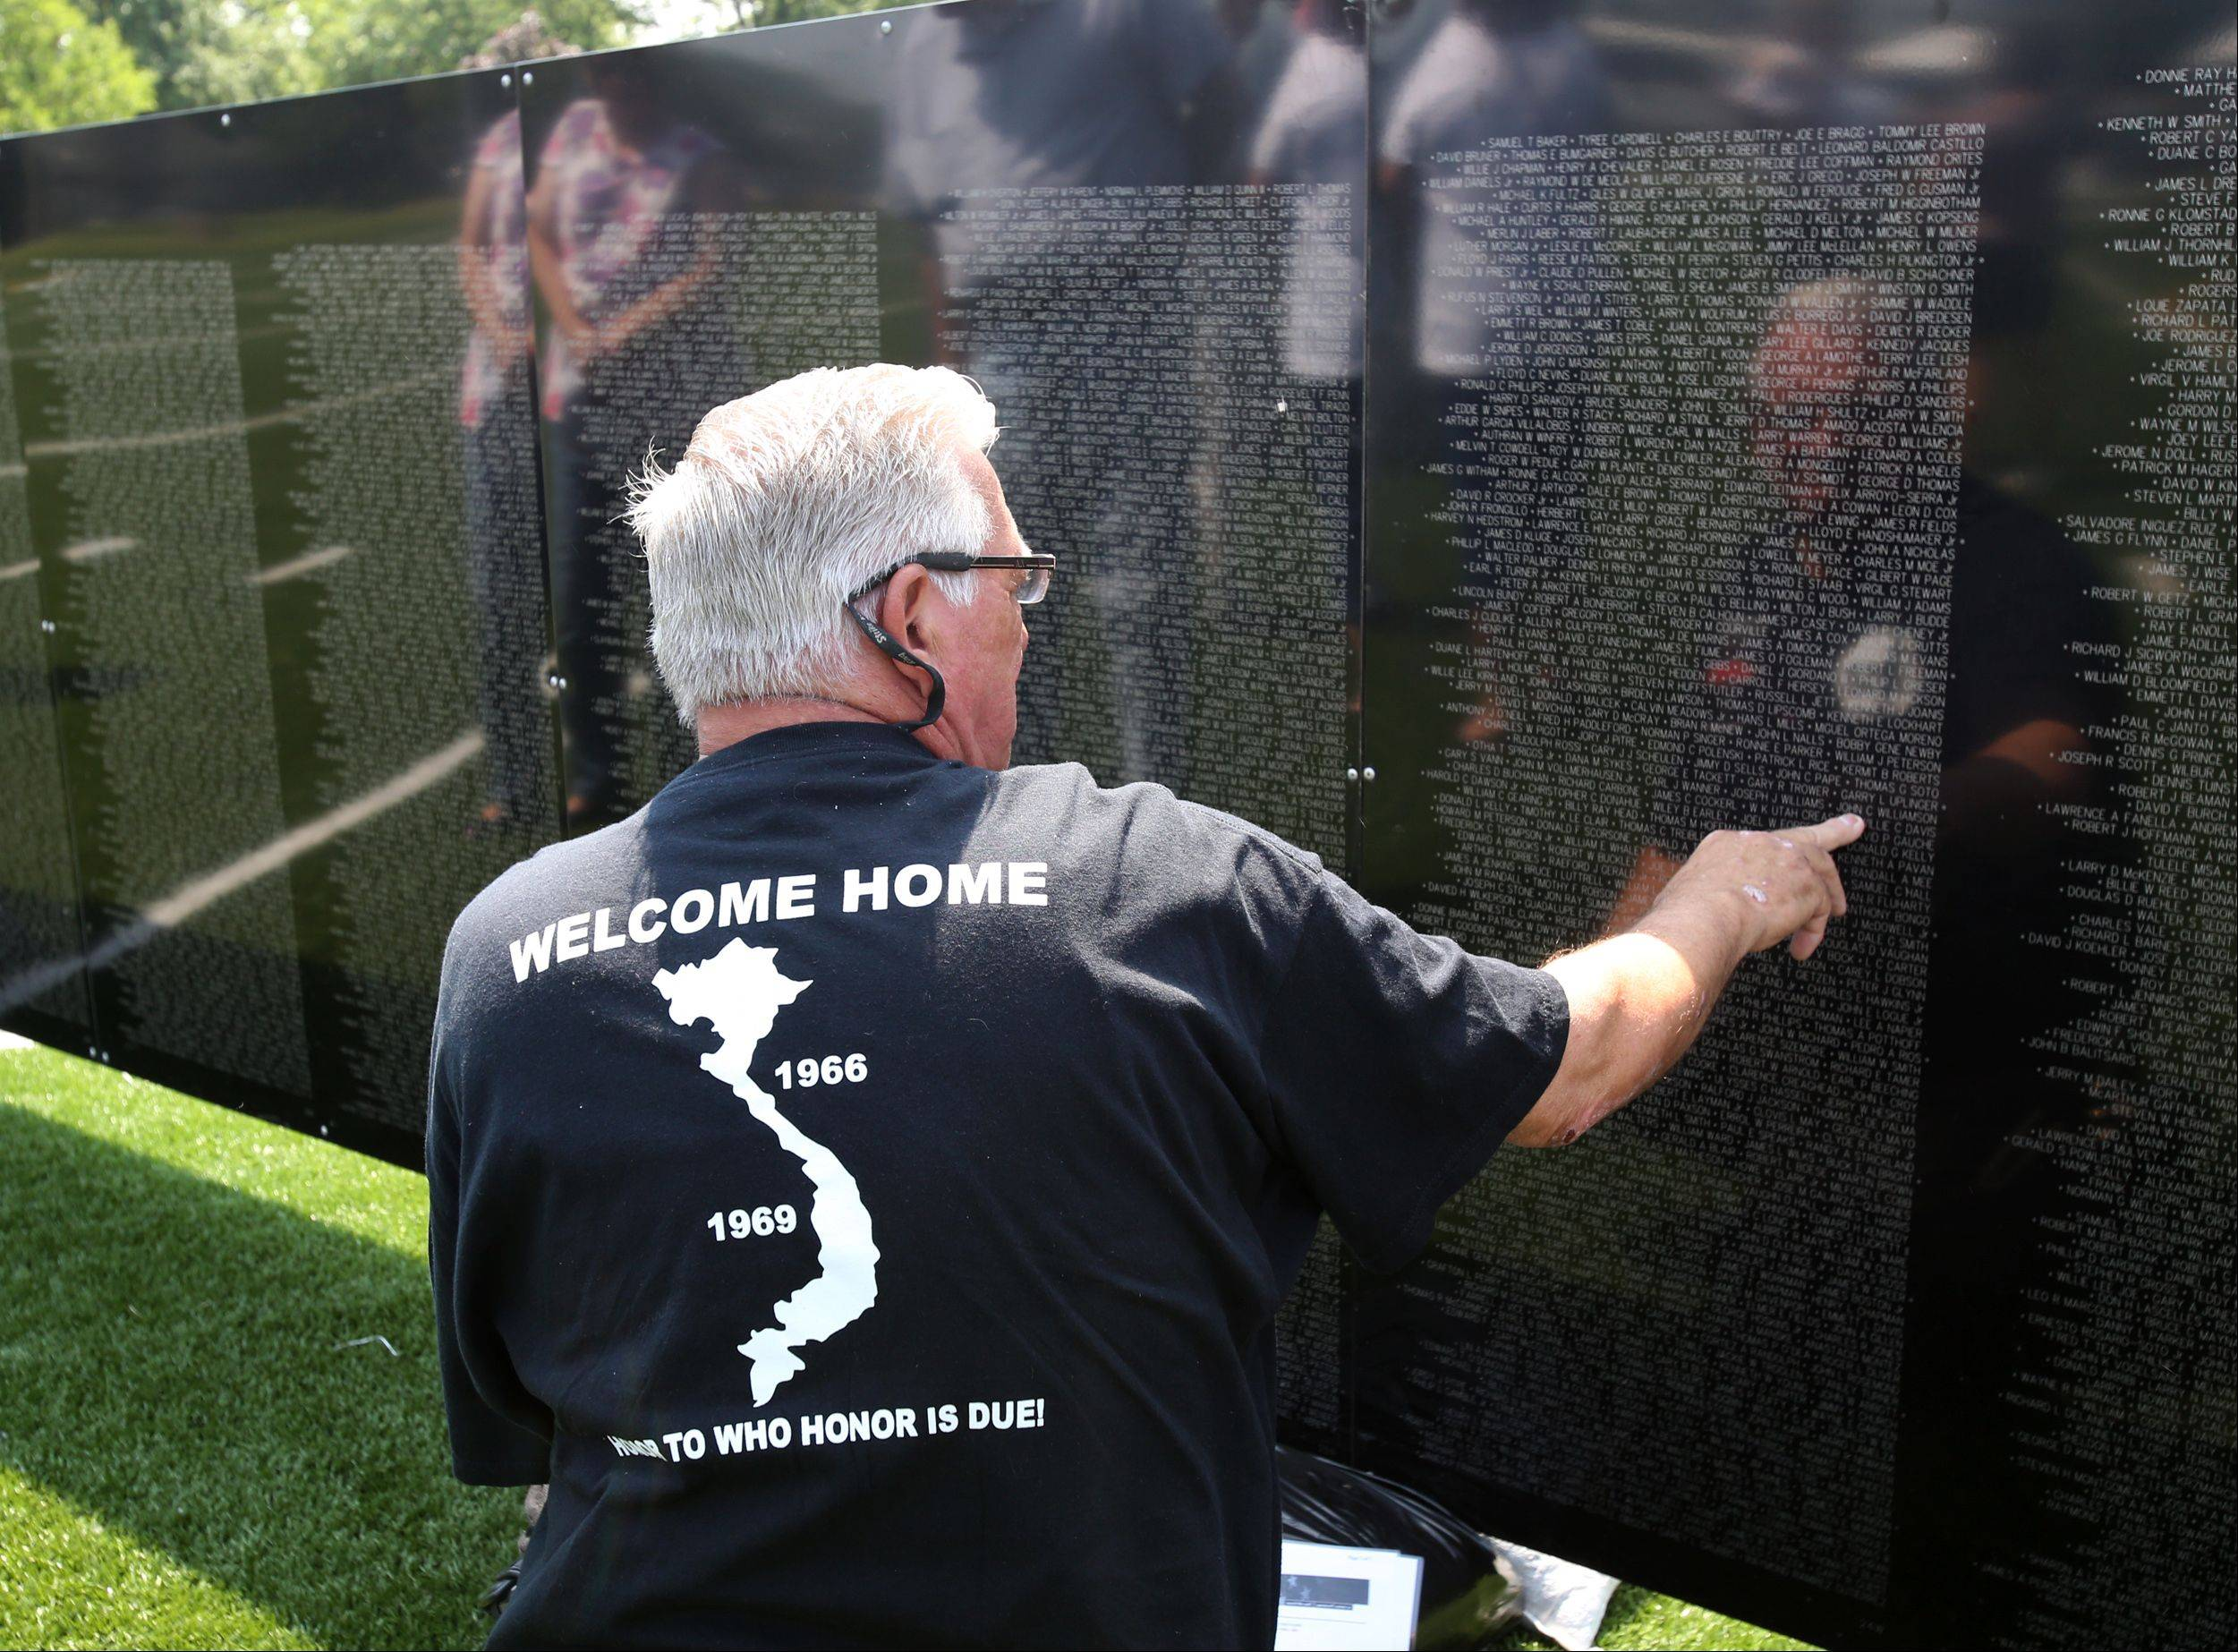 Helmut Stankevicius of Elmhurst, a veteran of the Army's 9th Division, pays his respects Thursday at The Wall That Heals, a traveling replica of the Vietnam Veterans Memorial Wall. The replica is on display in Bensenville's Redmond Park through Sunday.